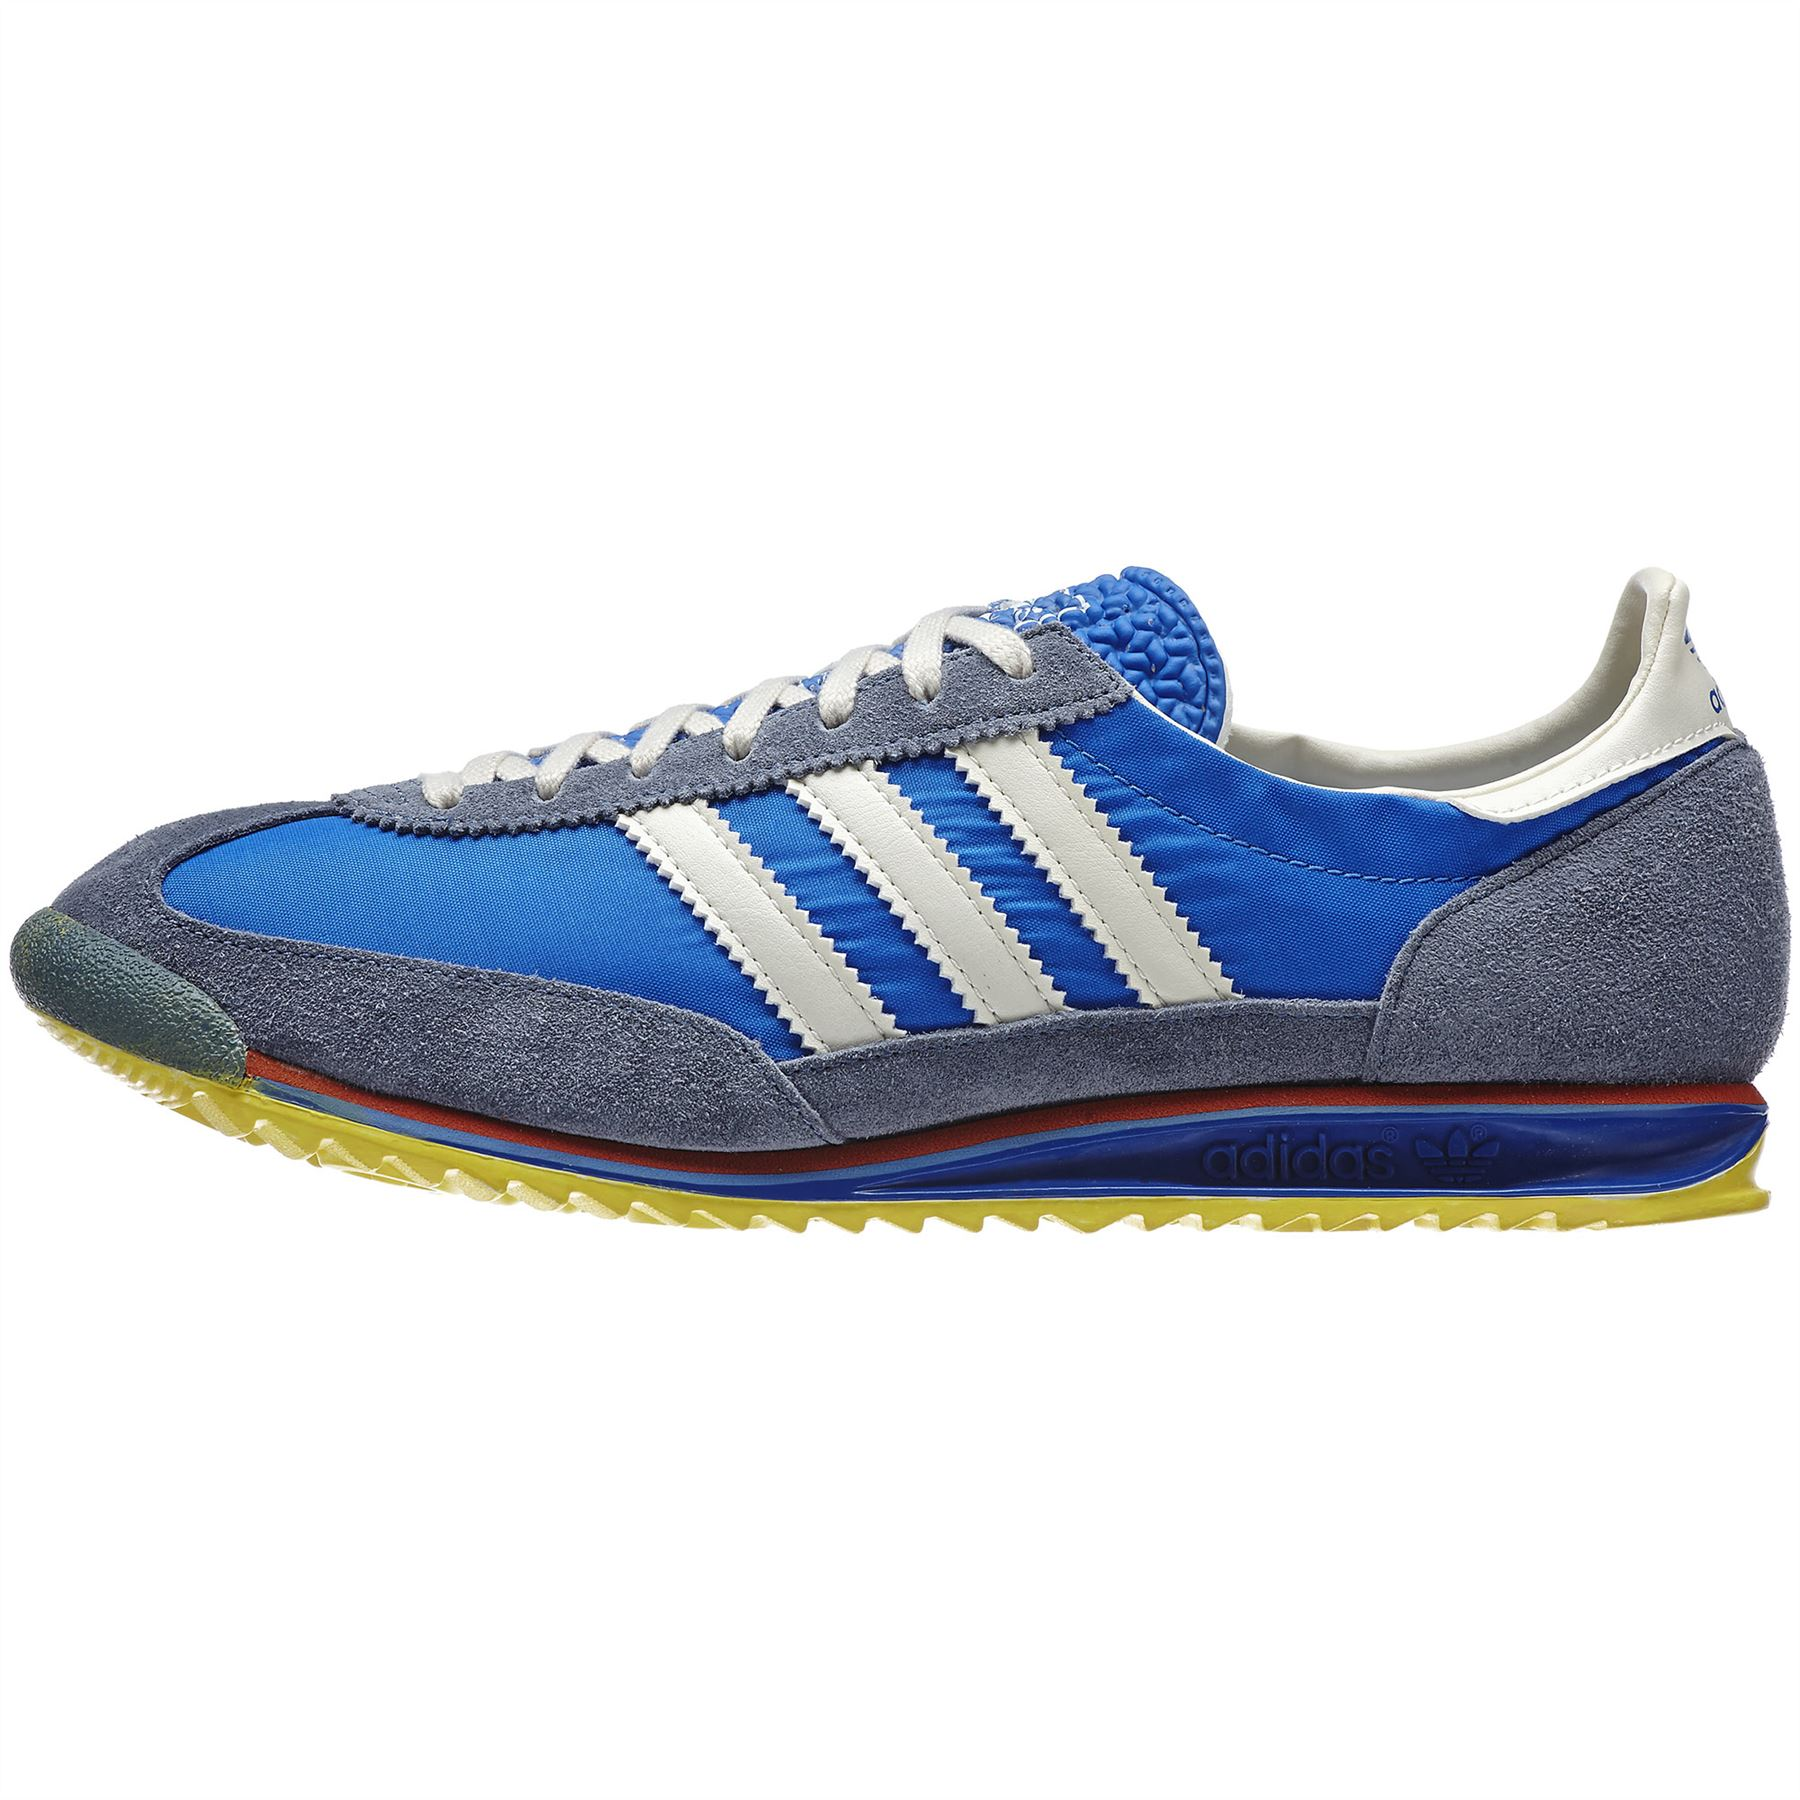 04d3ec9e7f0a ... adidas Originals SL 72 Vintage Trainers Mens Blue Retro Sneakers  Running Shoes ...